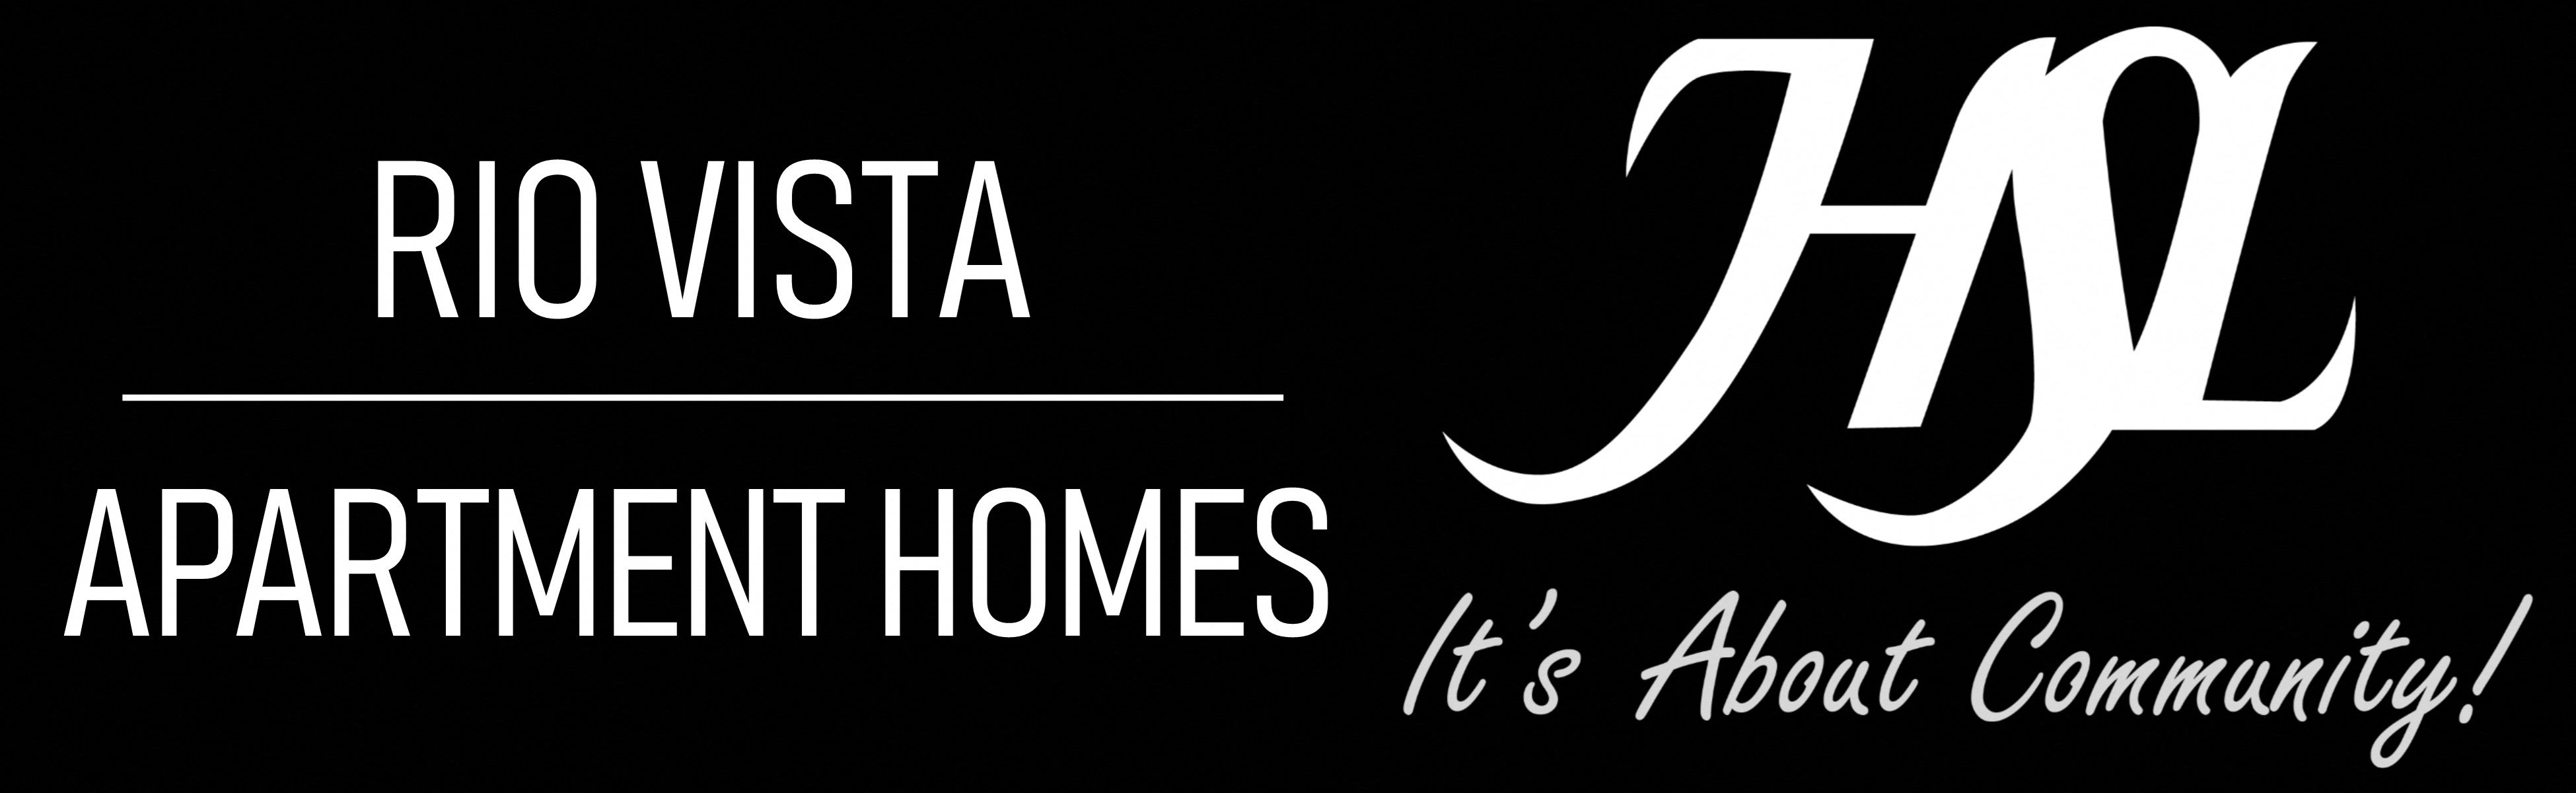 Rio Vista Apartment Homes Logo